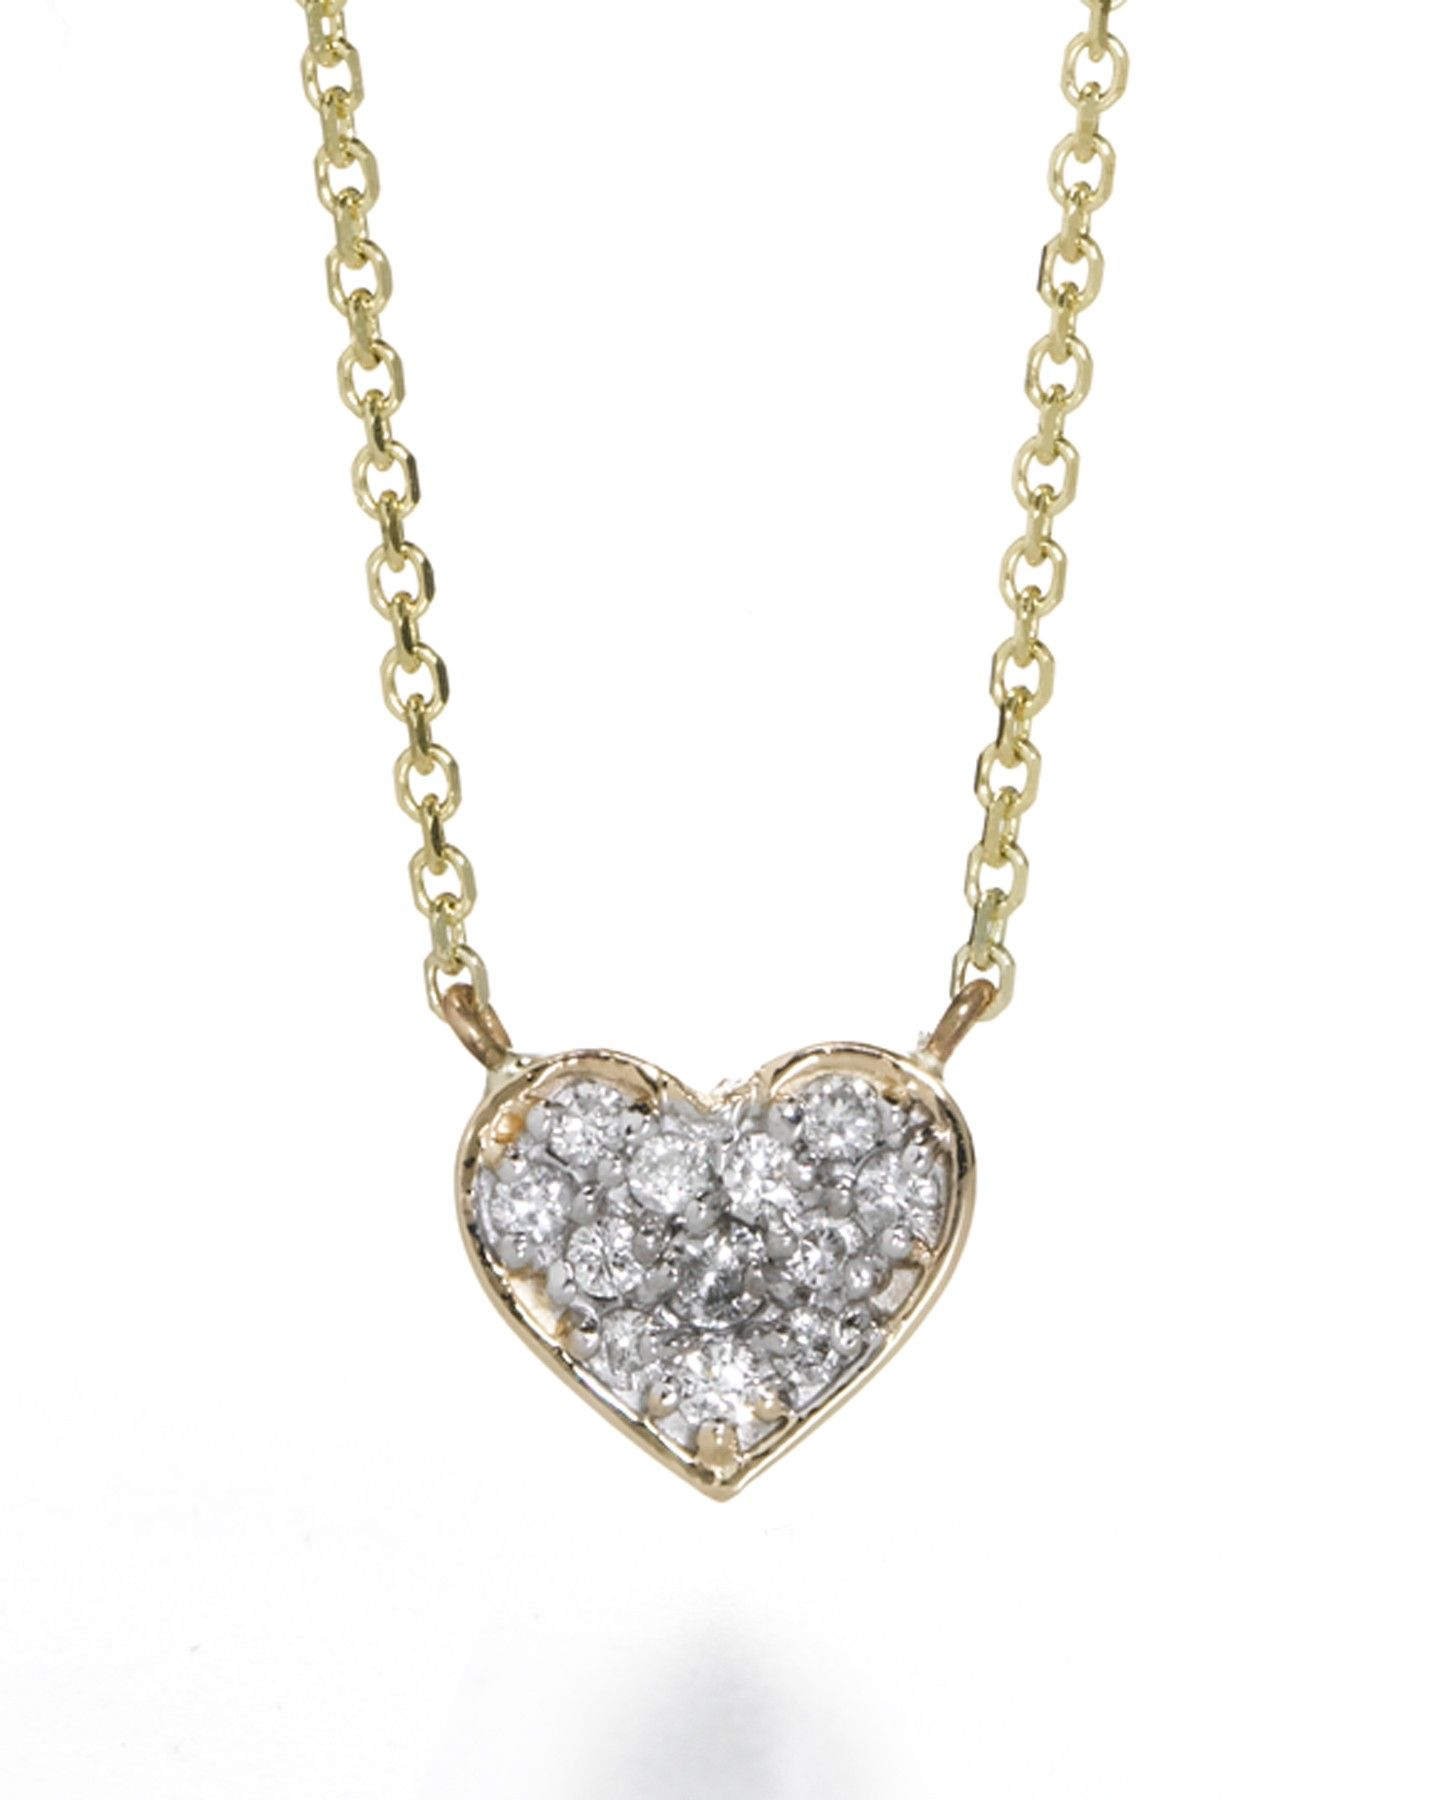 Kt lily diamond heart necklace by sarah chloe diamonds are a